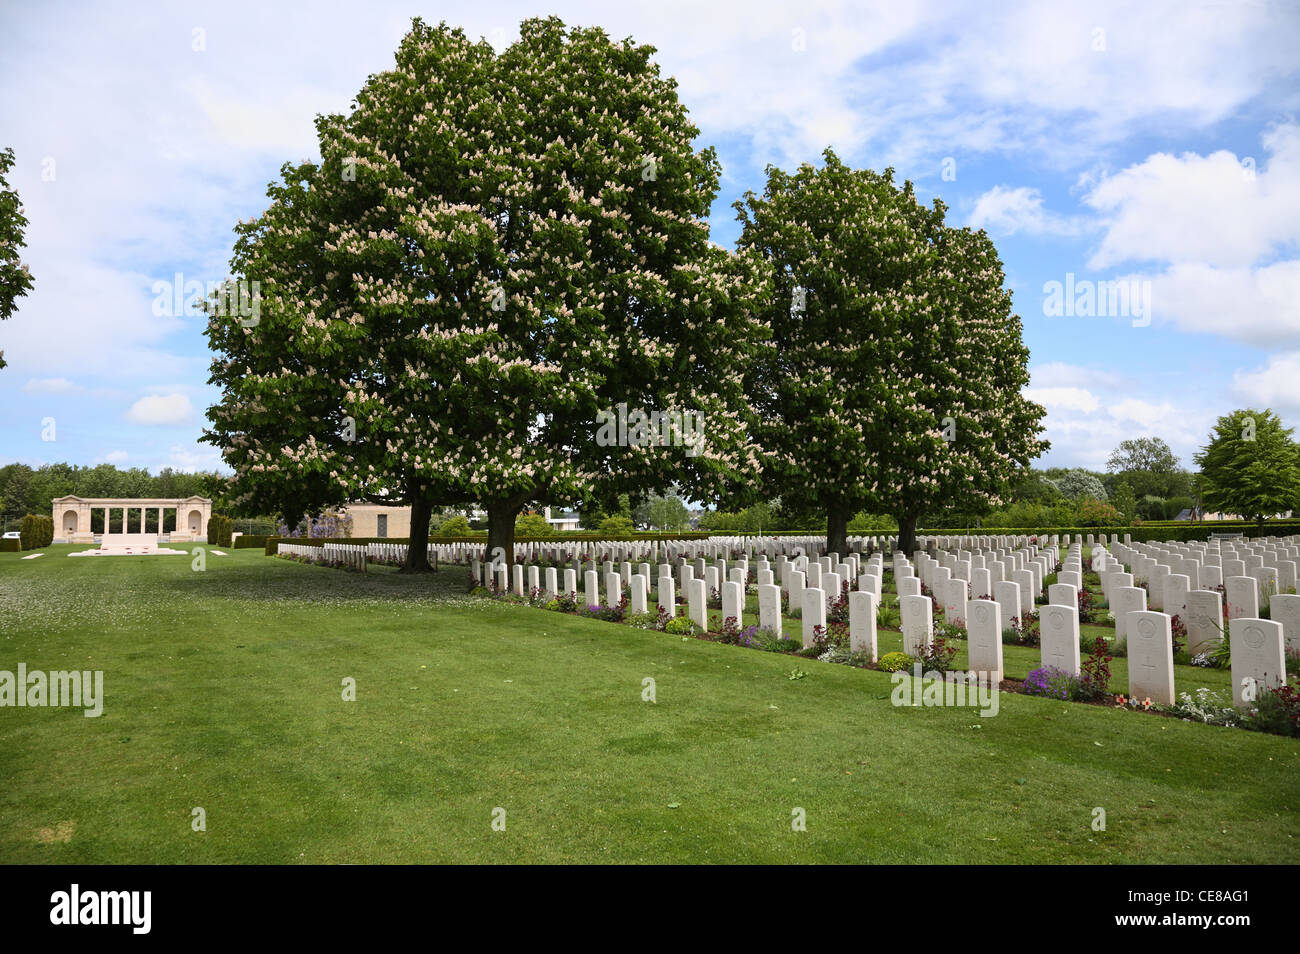 Memorial and graves under blooming chestnut trees in The Bayeux War Cemetery - The British War Cemetery at Bayeux, Stock Photo